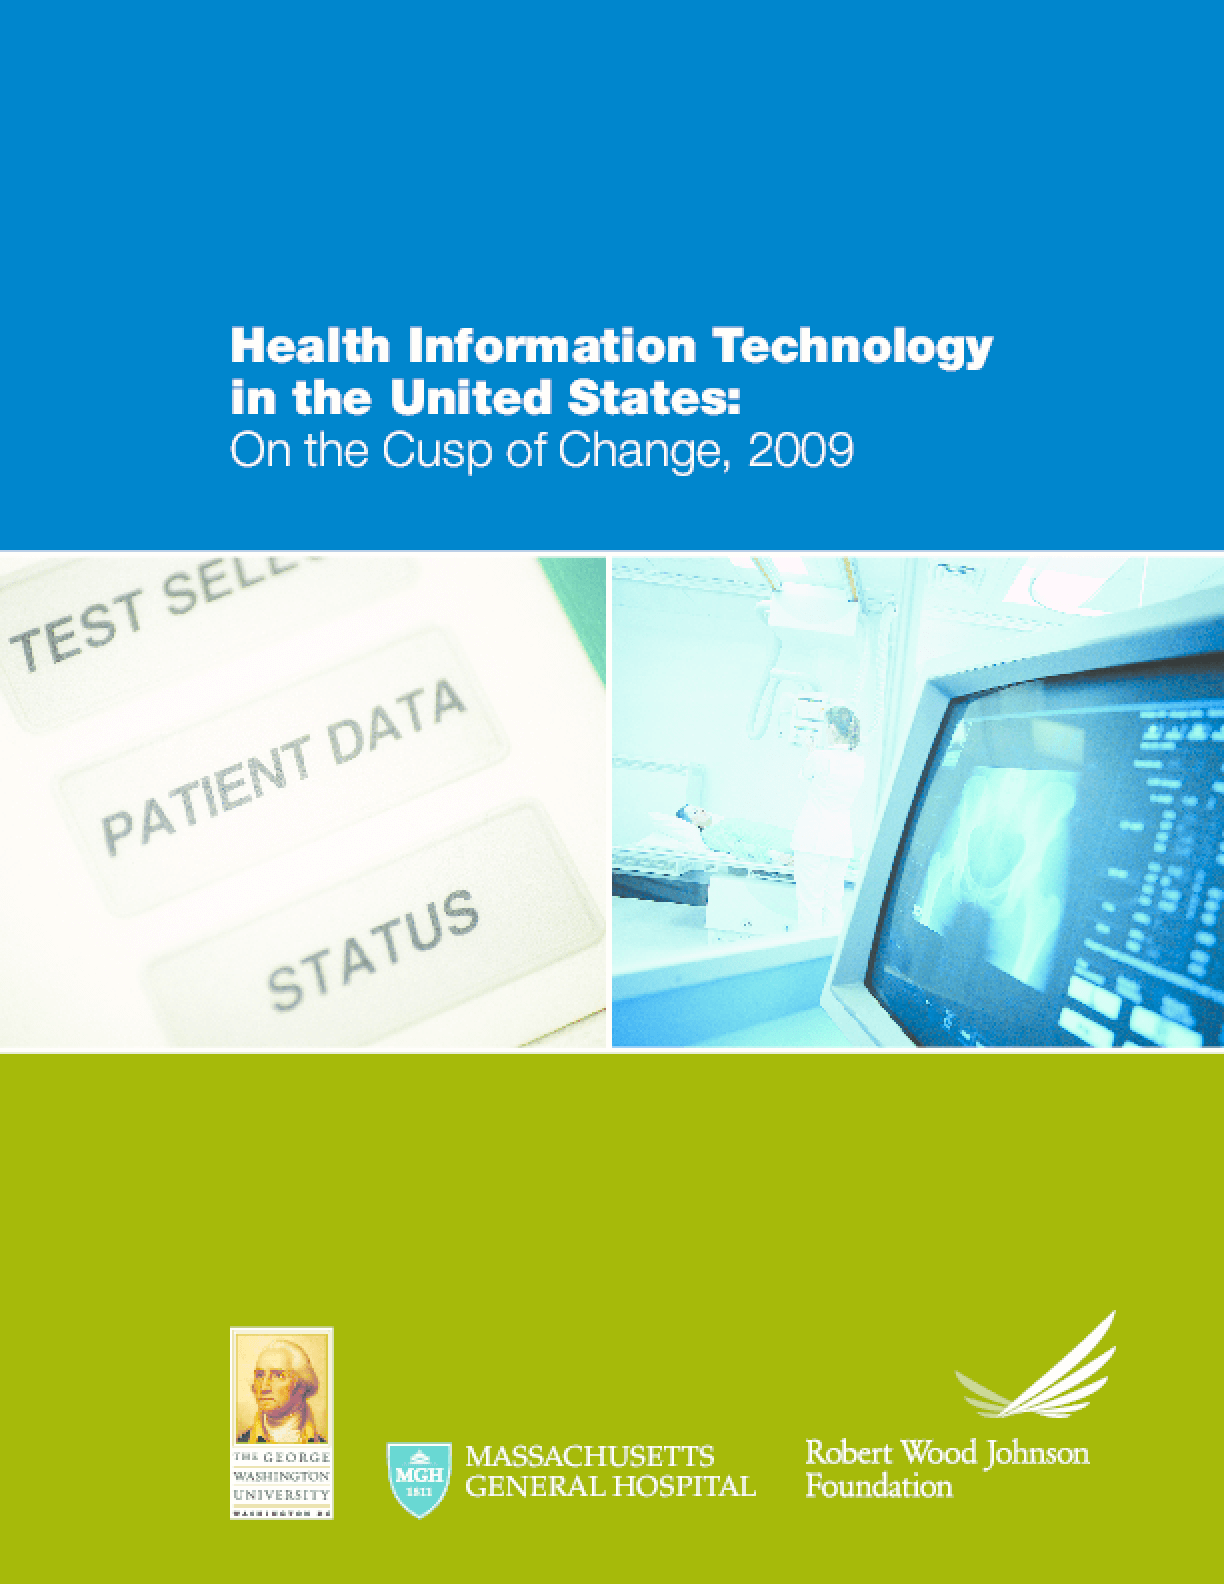 On the Cusp of Change: Health Information Technology in the United States, 2009